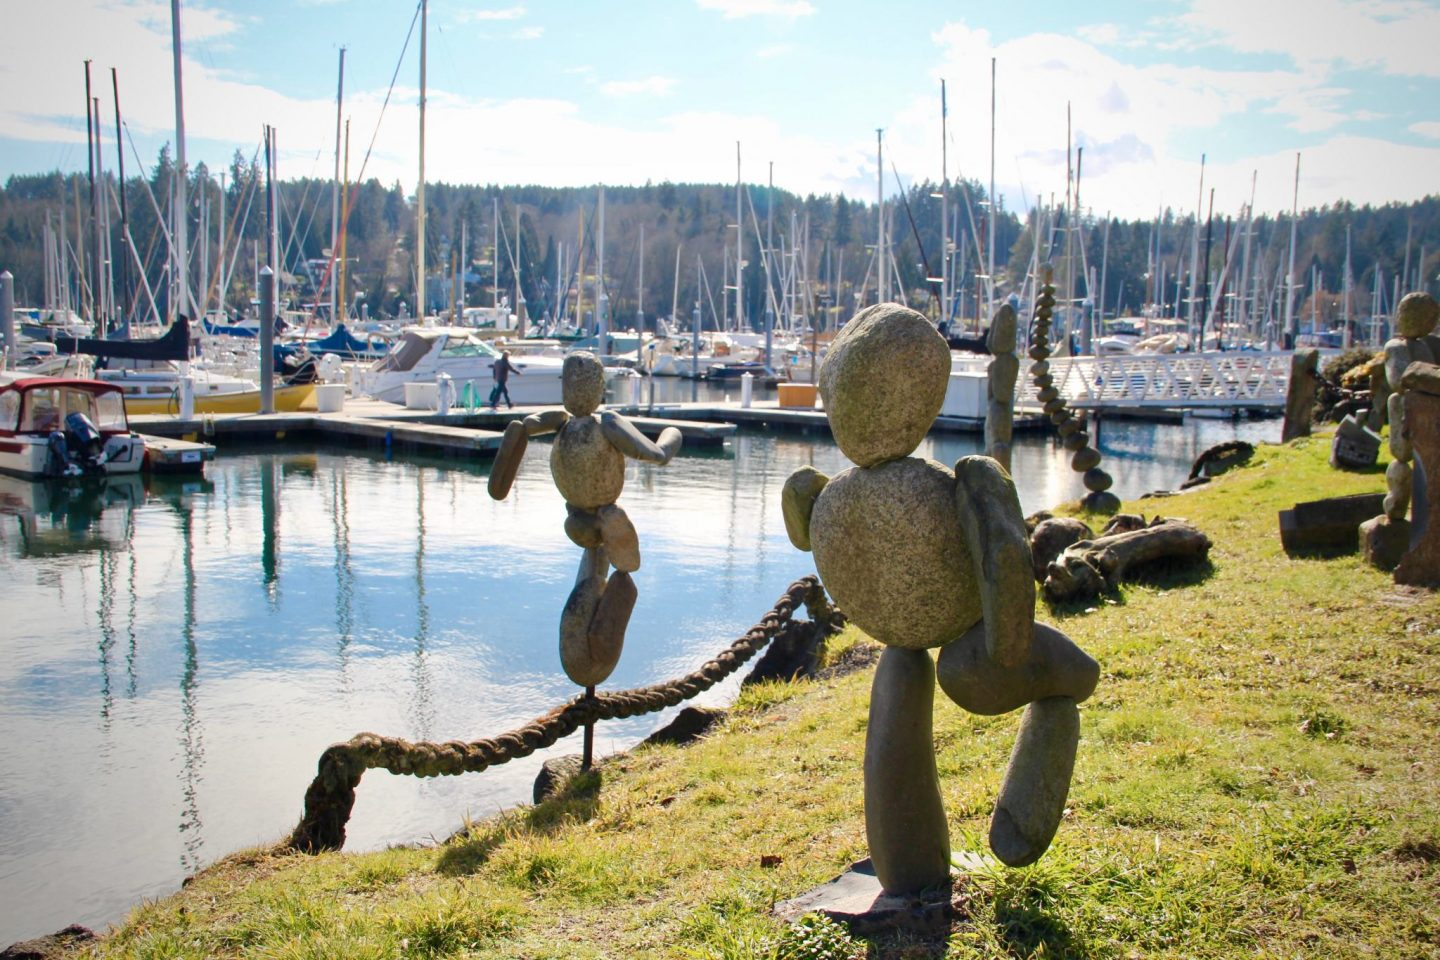 Bainbridge Island rock statues, Washington - The Spectacular Adventurer